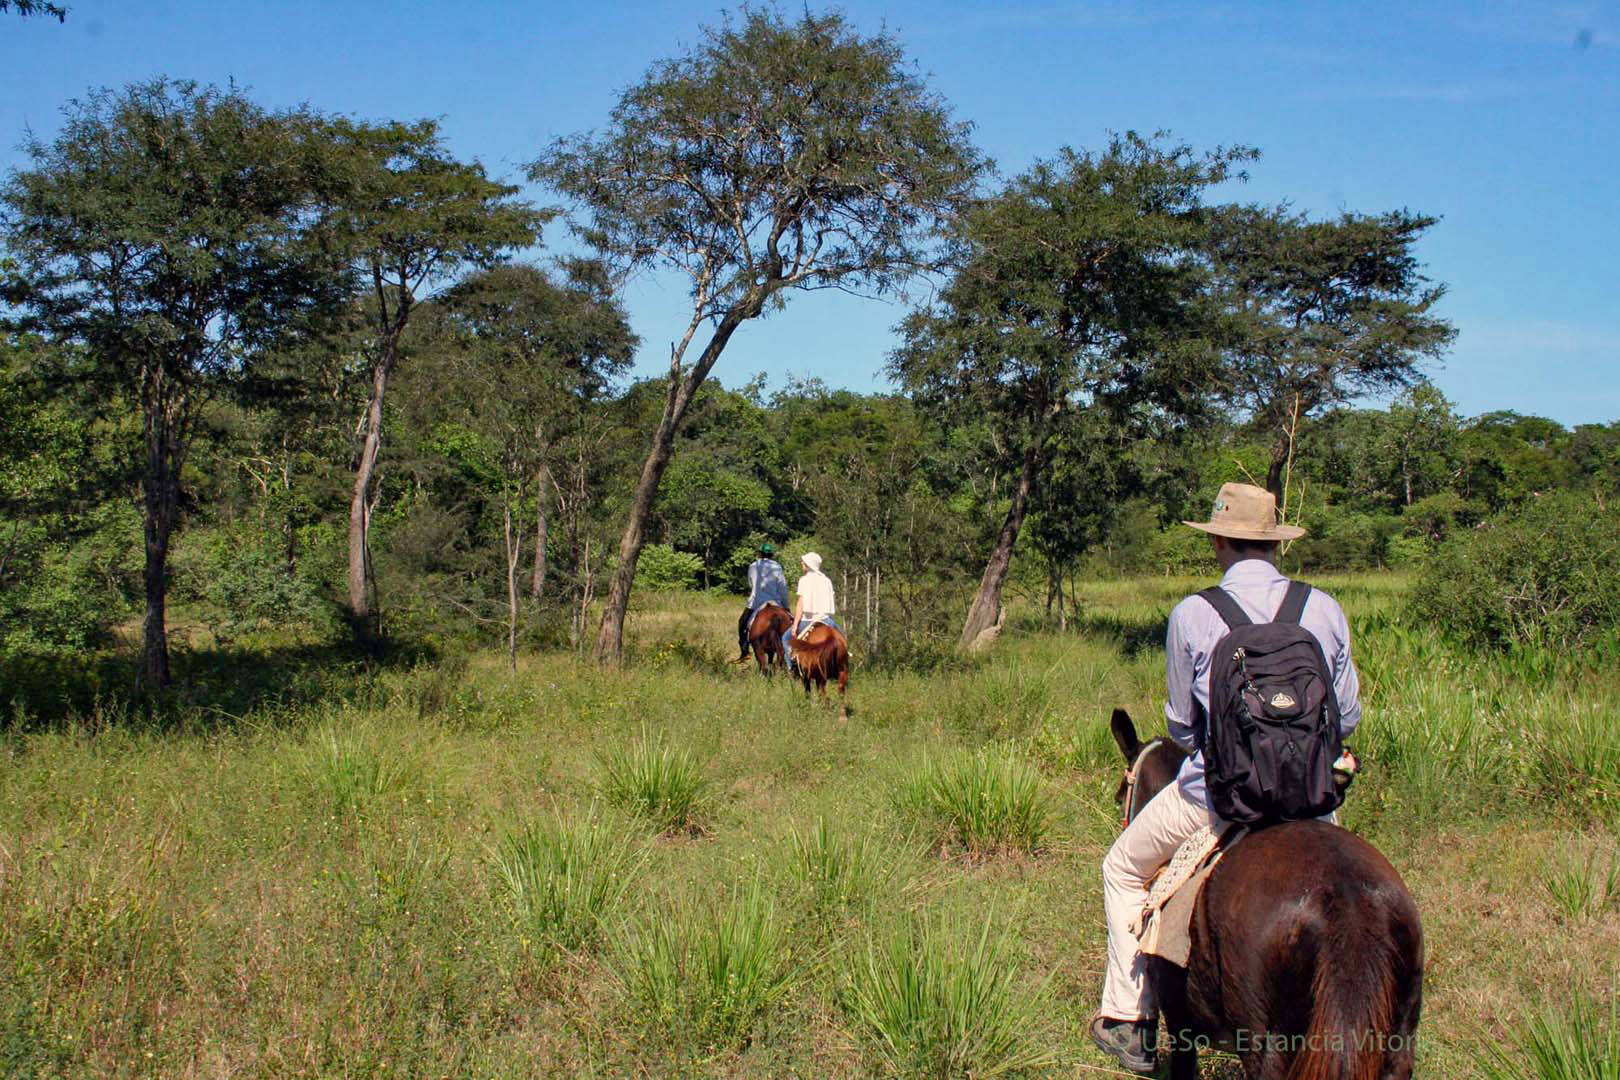 Excursions on horseback, discovery tours